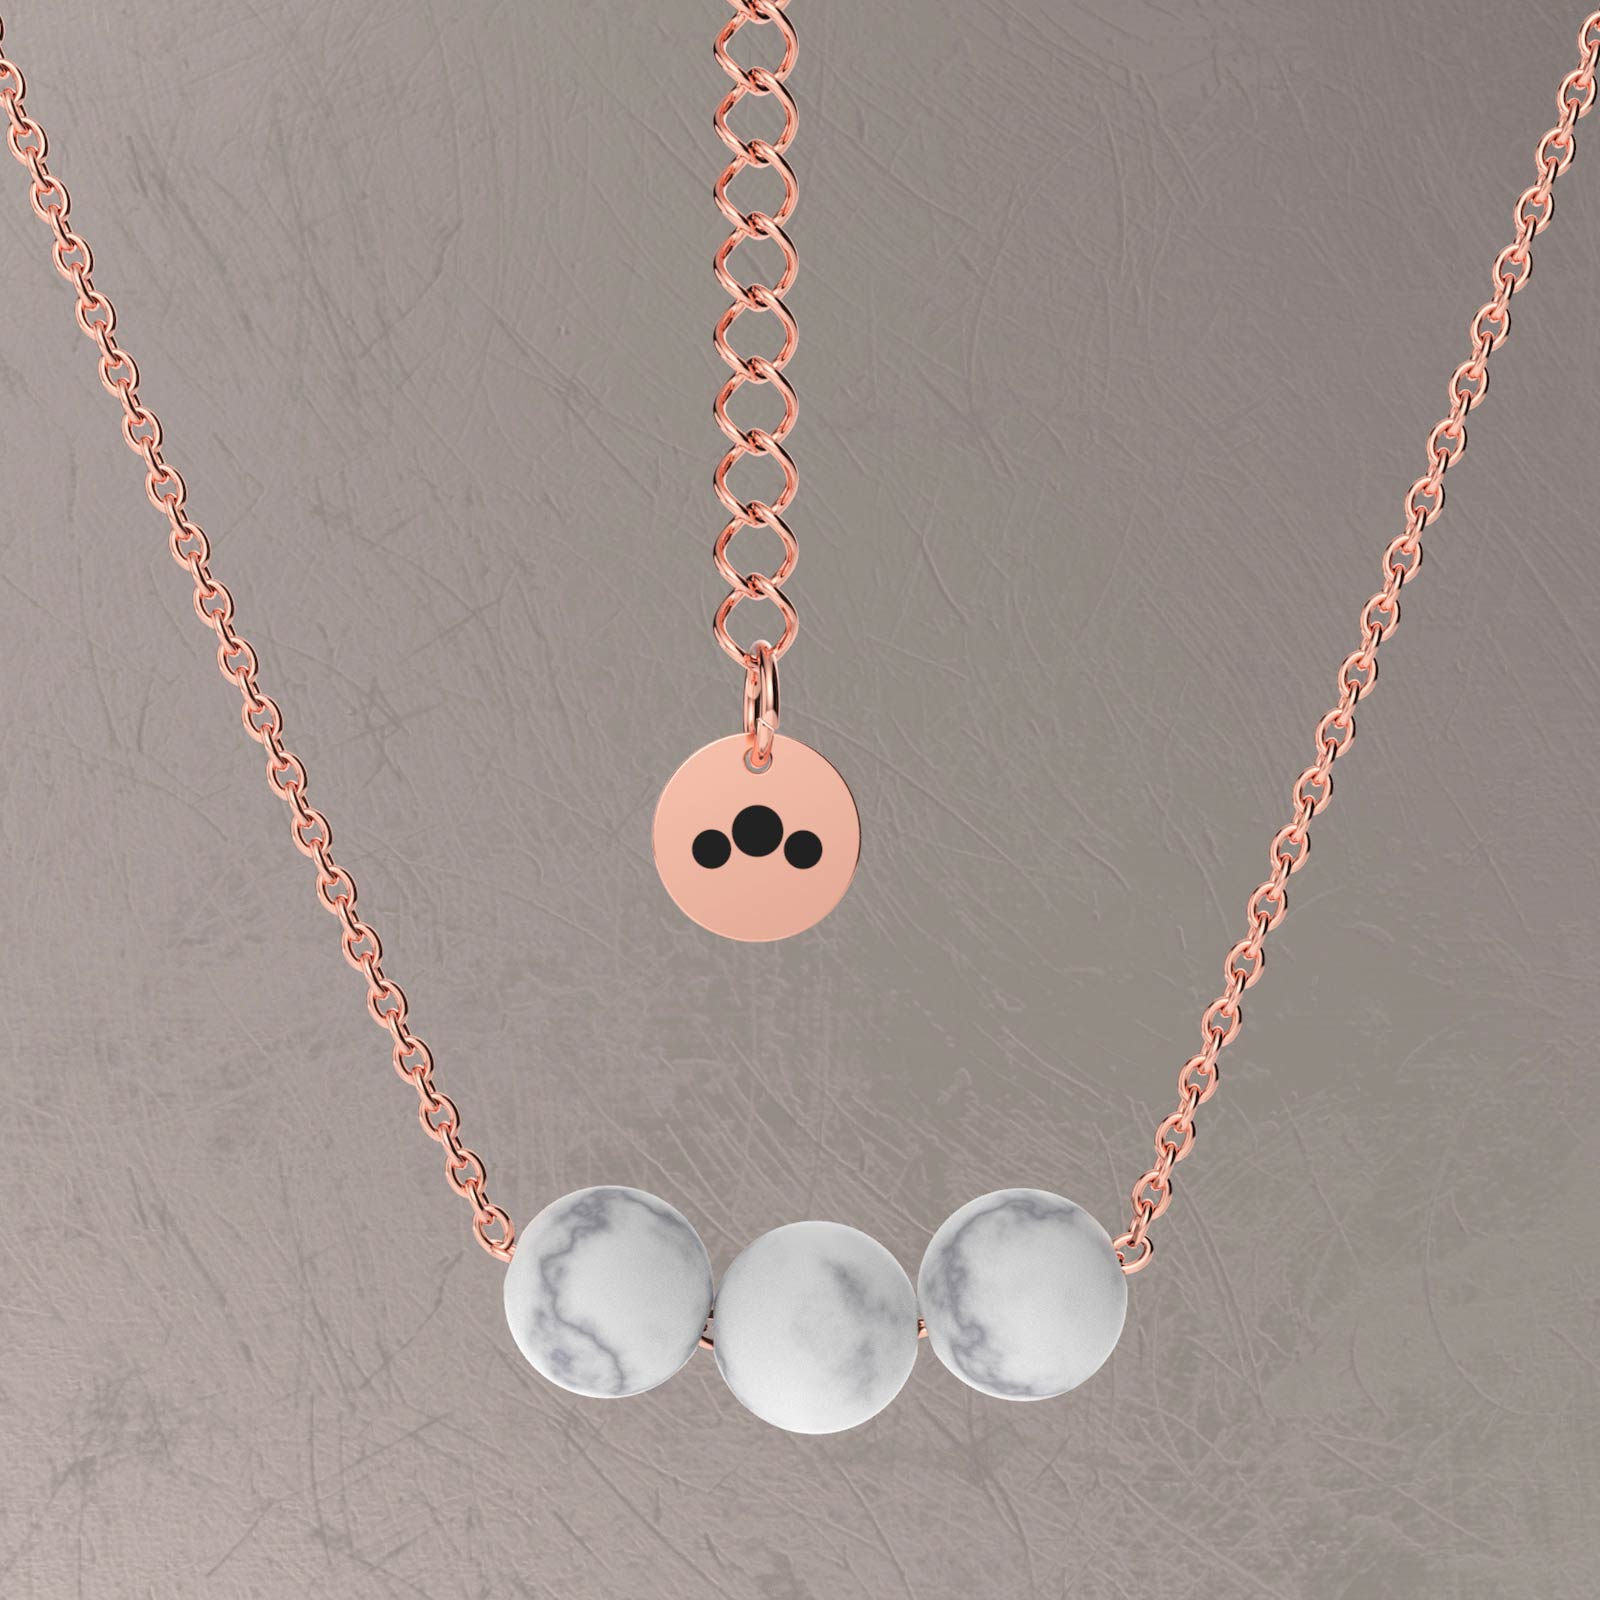 triton rose gold necklace marble stone granelloso